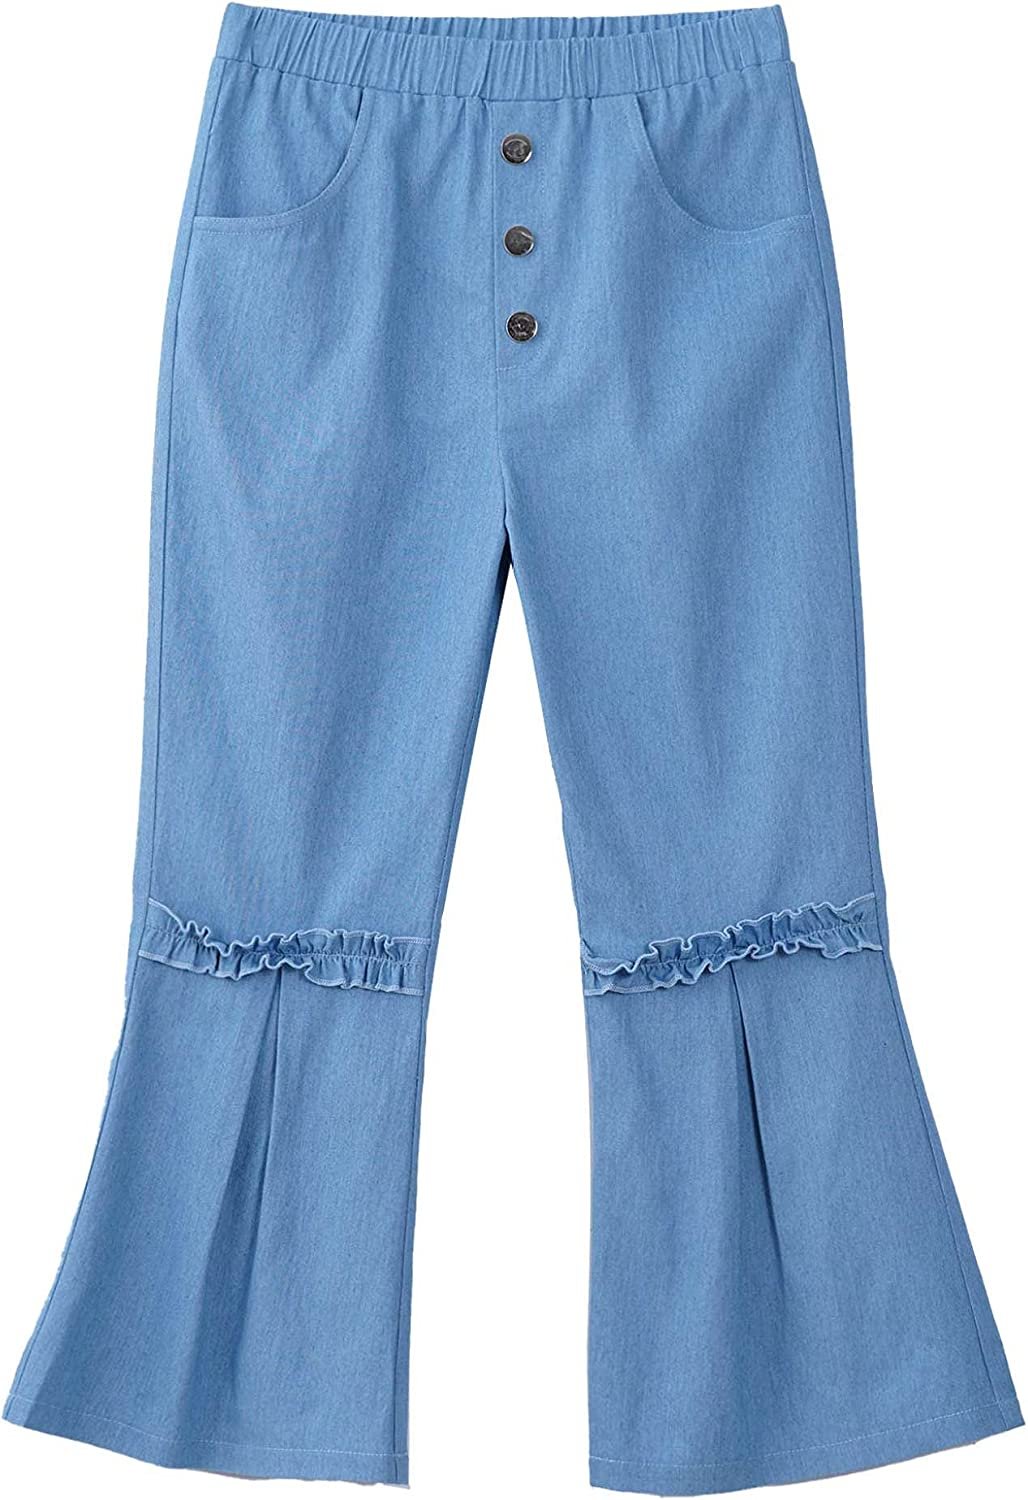 Jowowha Kids Girls Stretchy Waist Denim Bell-Bottoms Pants with Pockets Hip Hop Jazz Athletic Activewear Bottoms